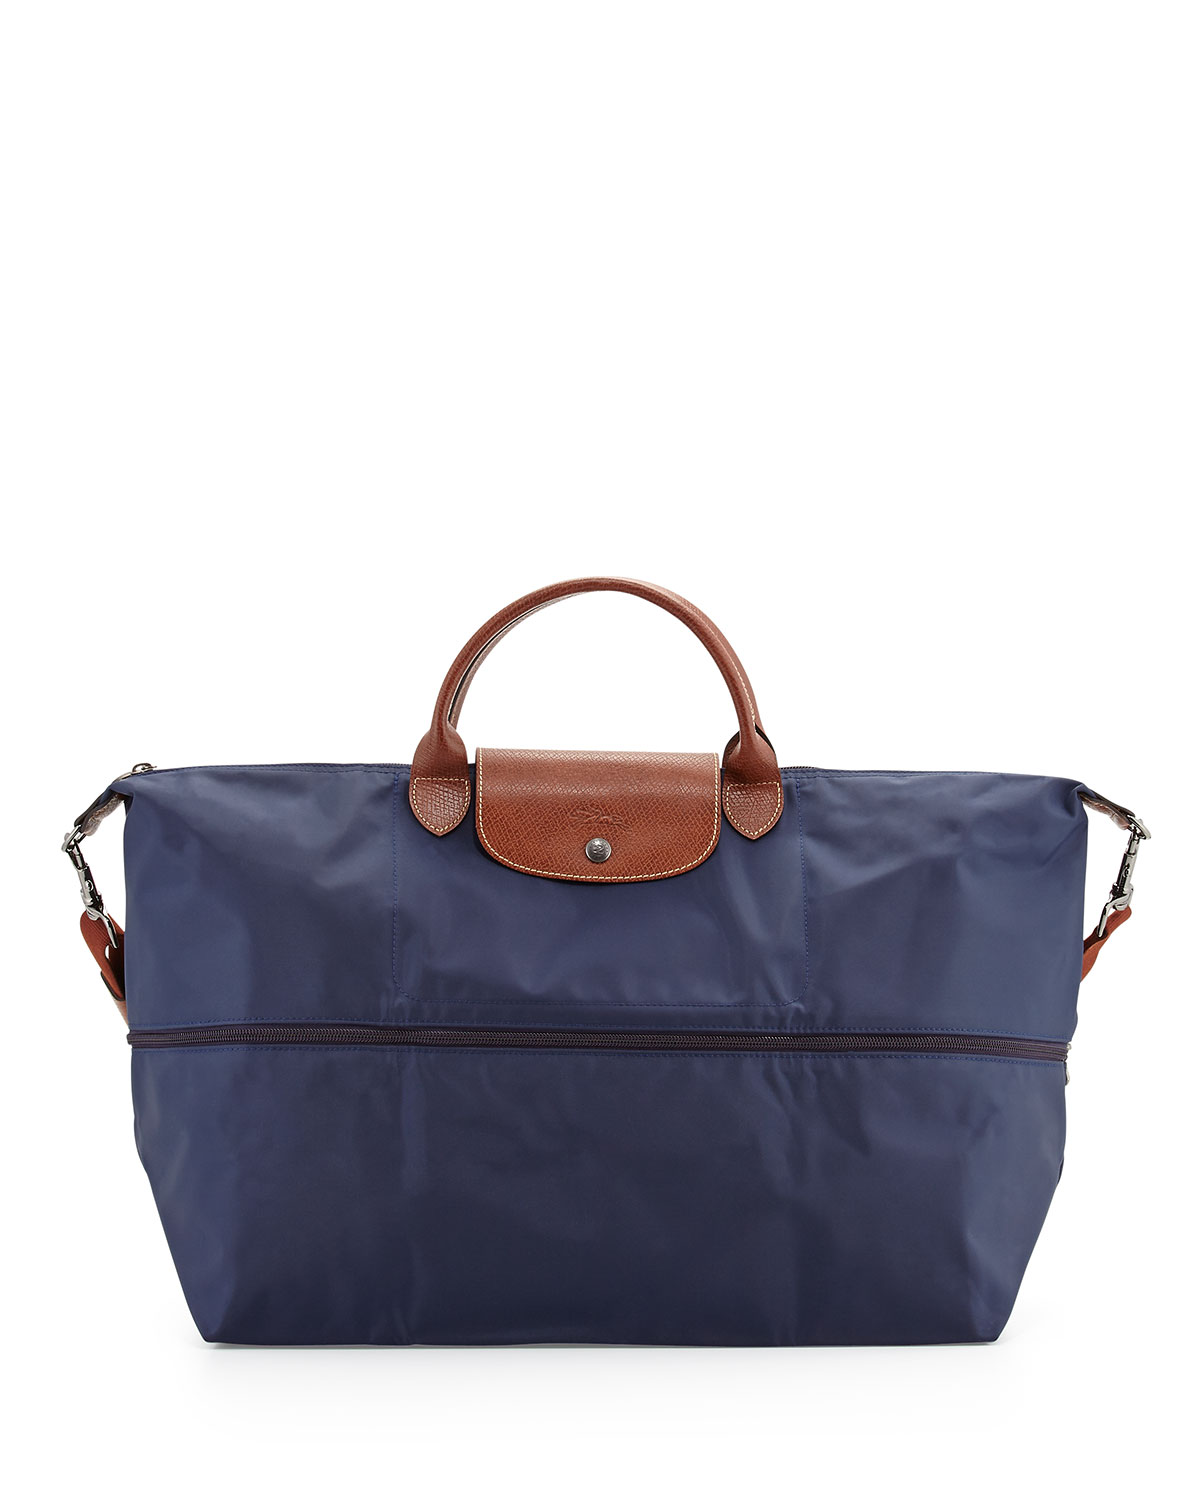 Le Pliage Expandable Travel Bag Navy